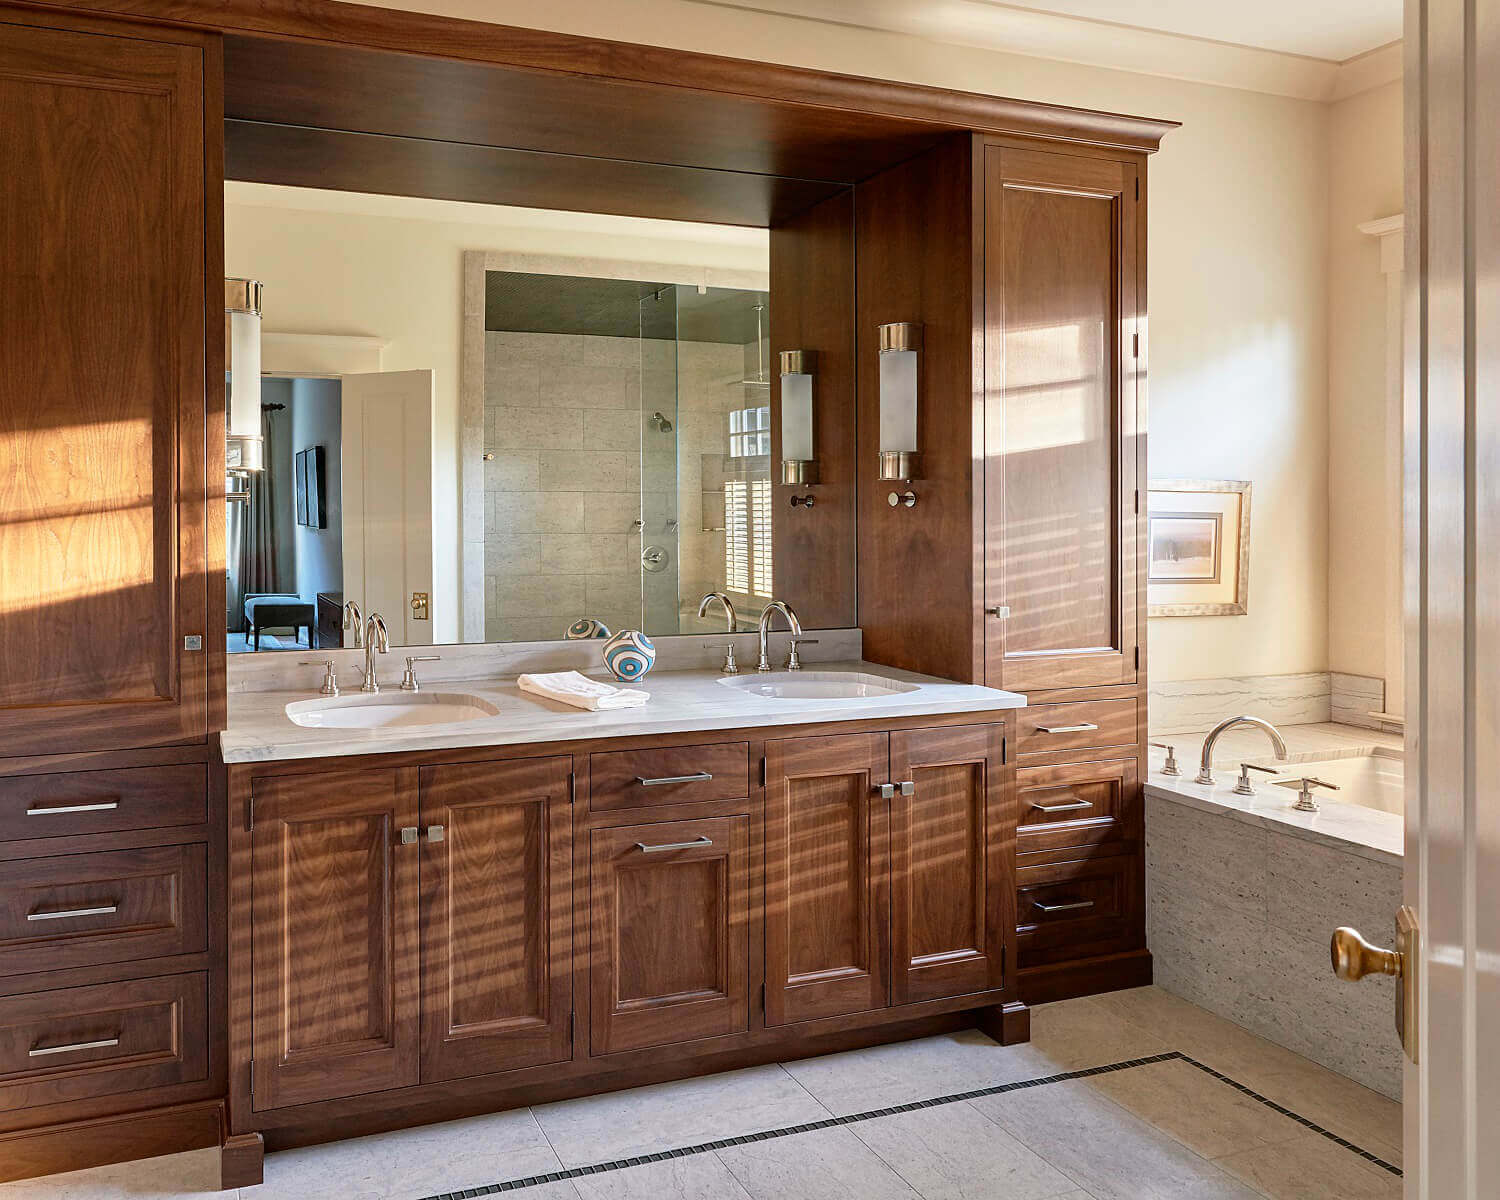 Warm Custom Cabinetry for this Family Bathroom